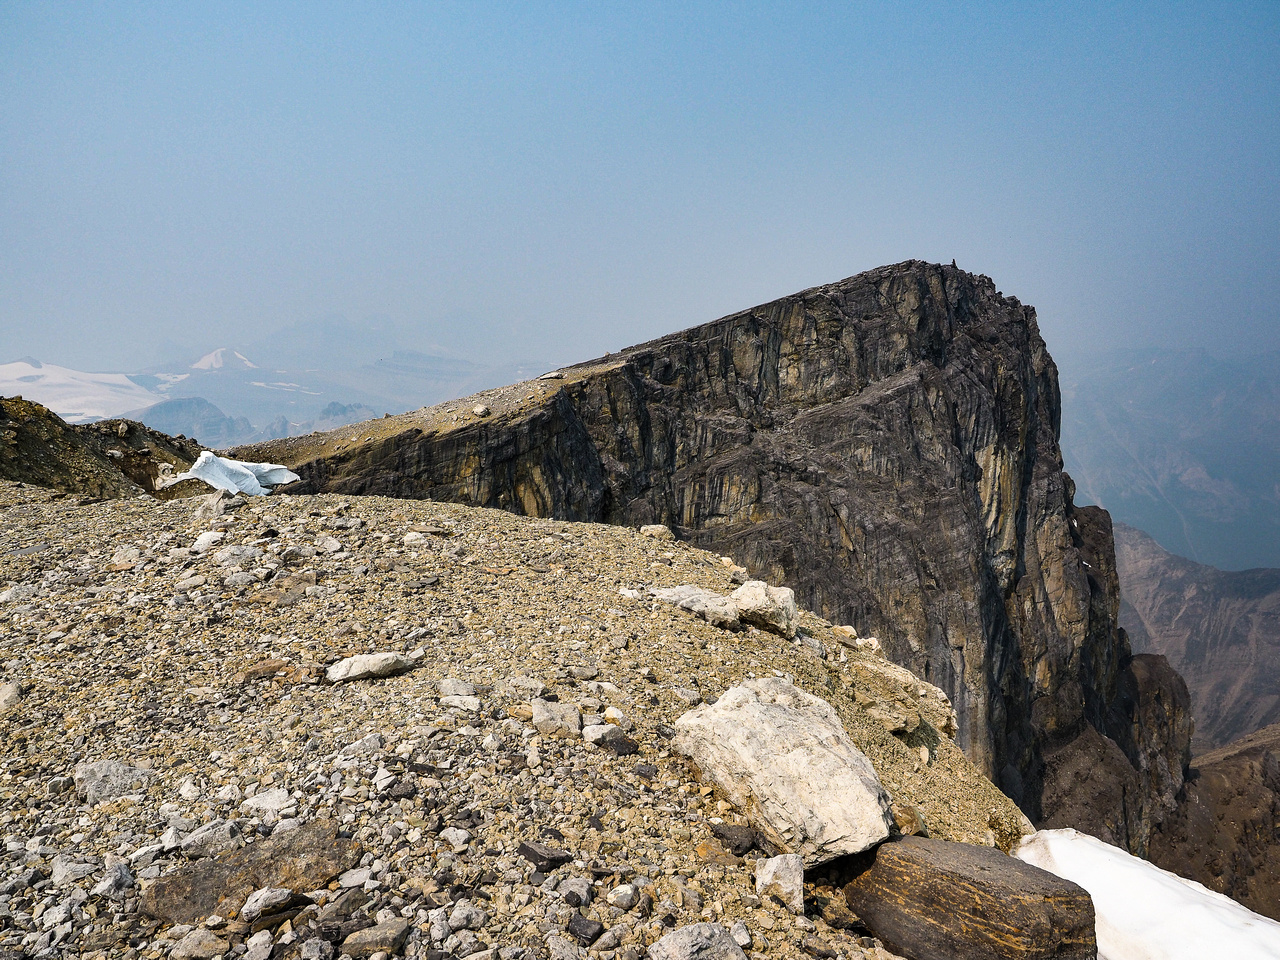 The summit from the false summit.